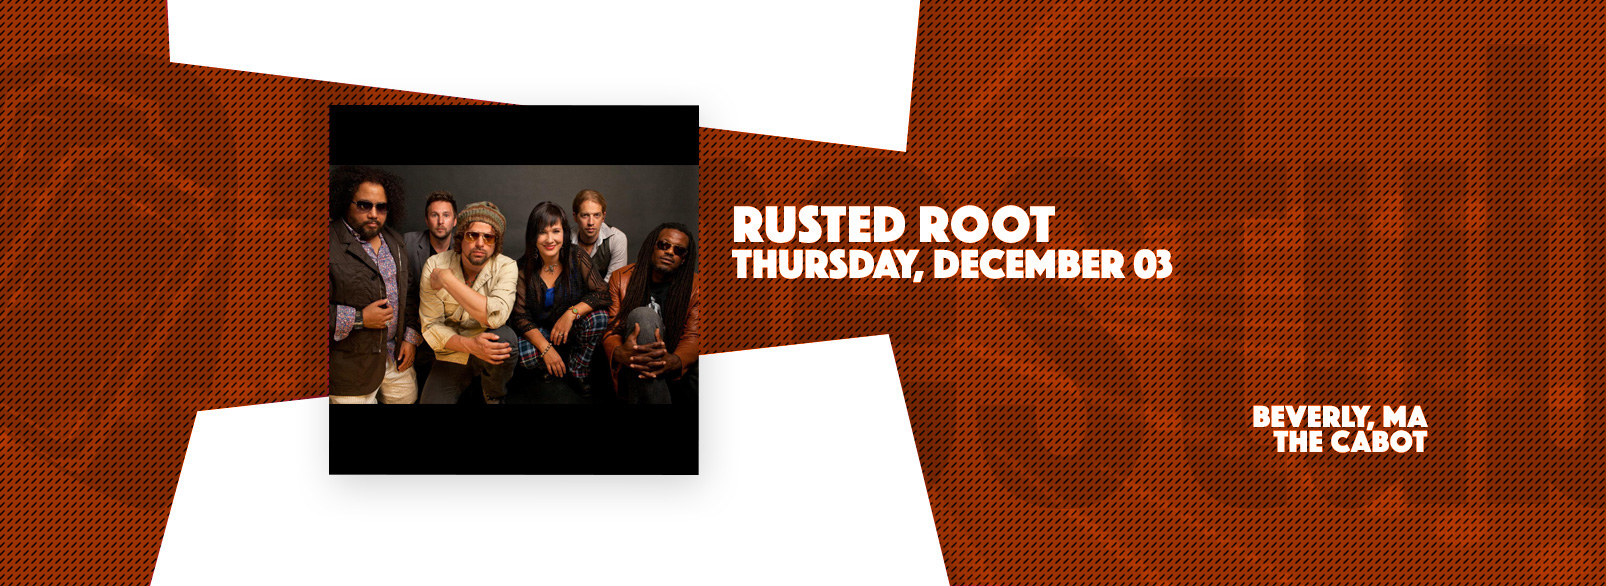 Rusted Root @ The Cabot